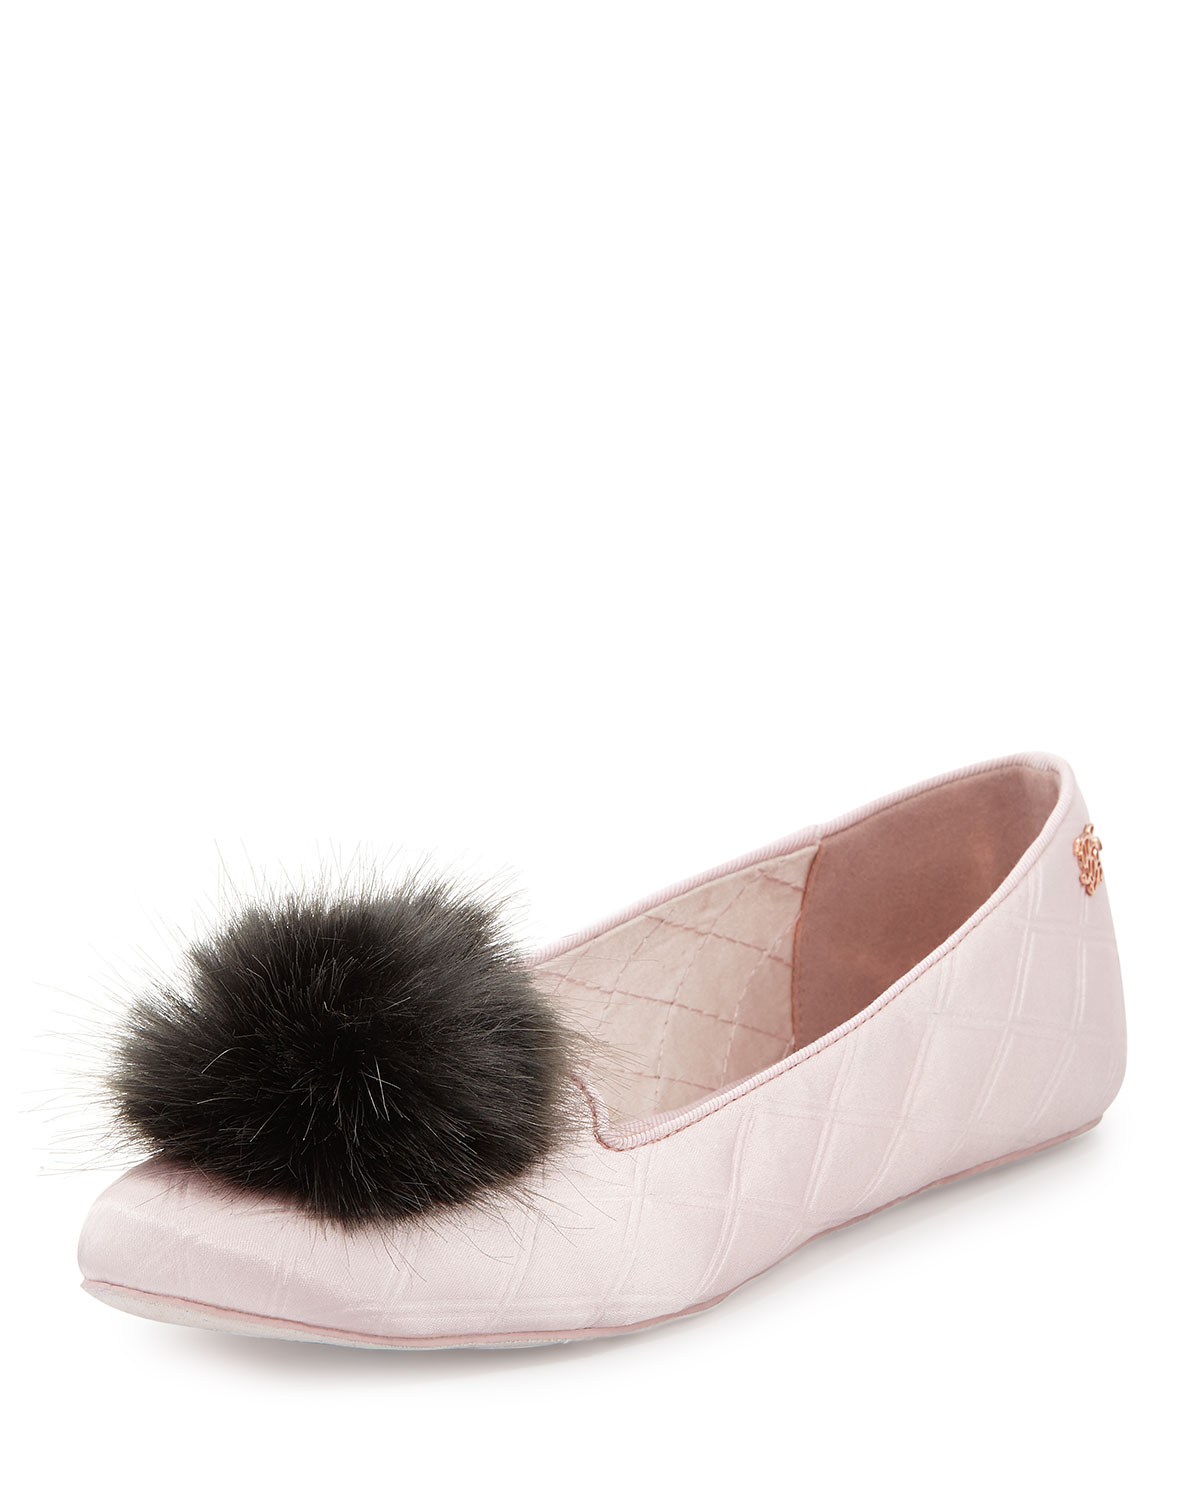 2fa97c4ad2b13c Gallery. Previously sold at  Neiman Marcus · Women s Pom Pom Shoes